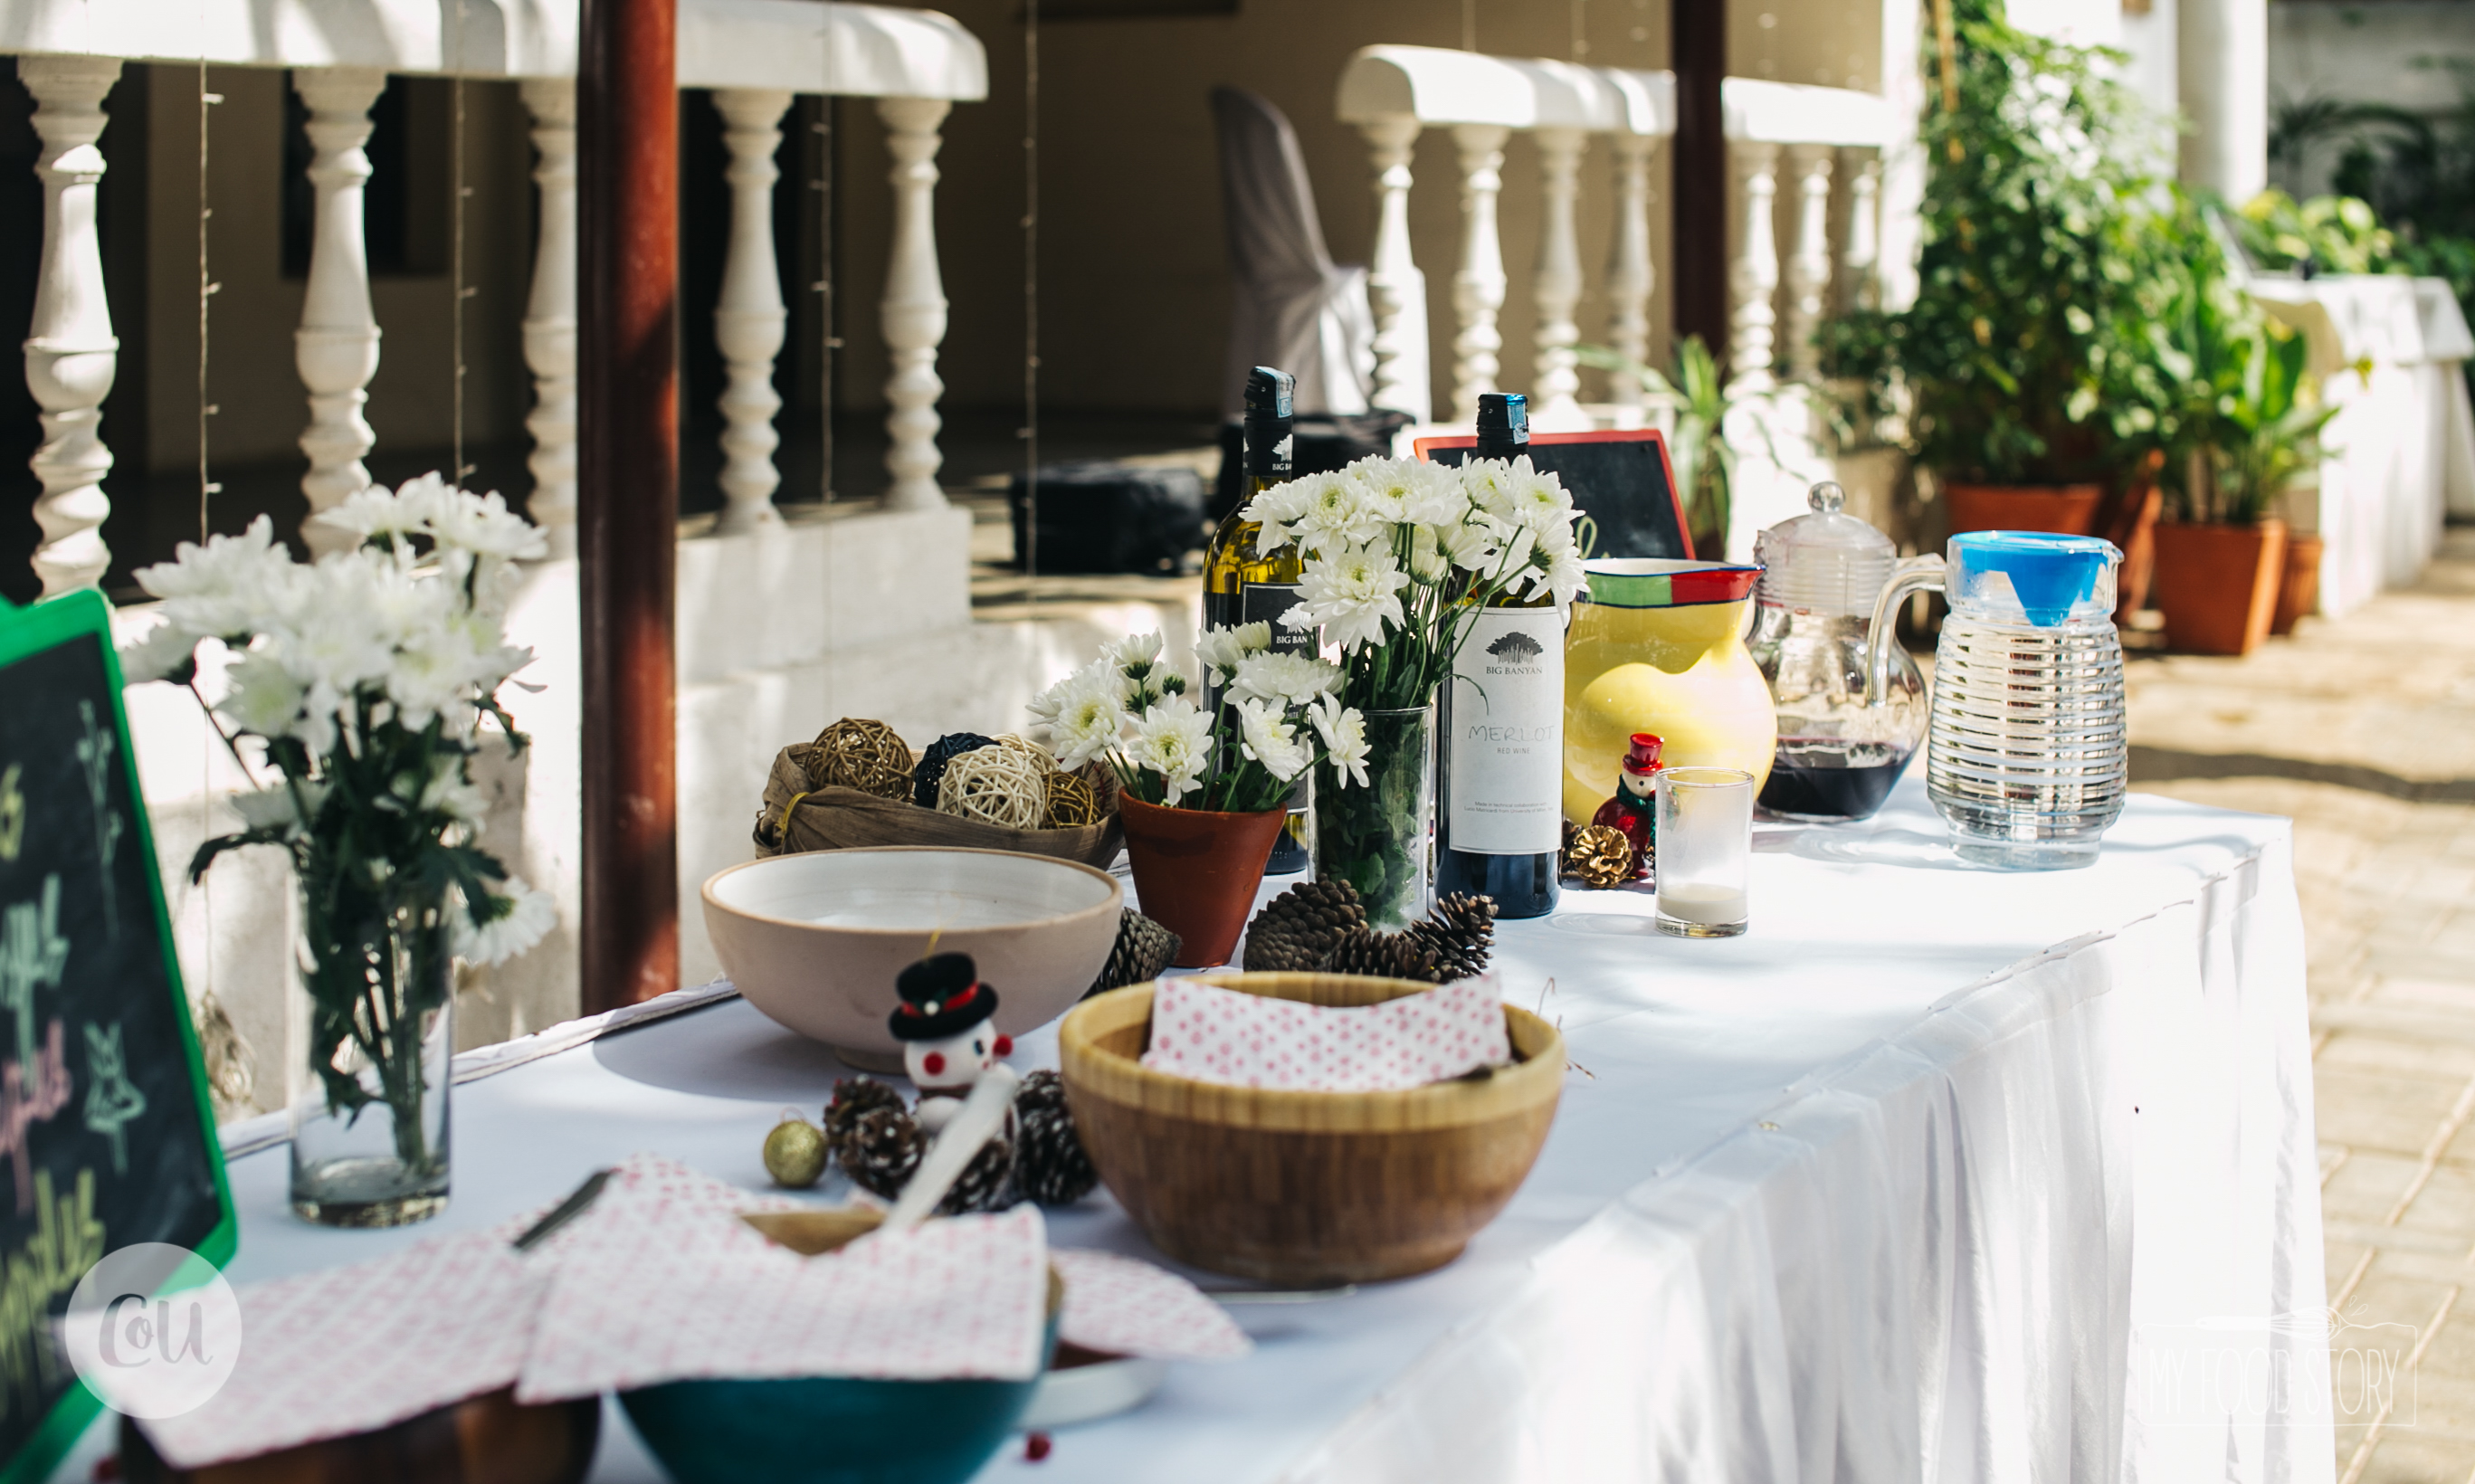 Santa's Secret Bruncheon that Couple of Us and My Food Story